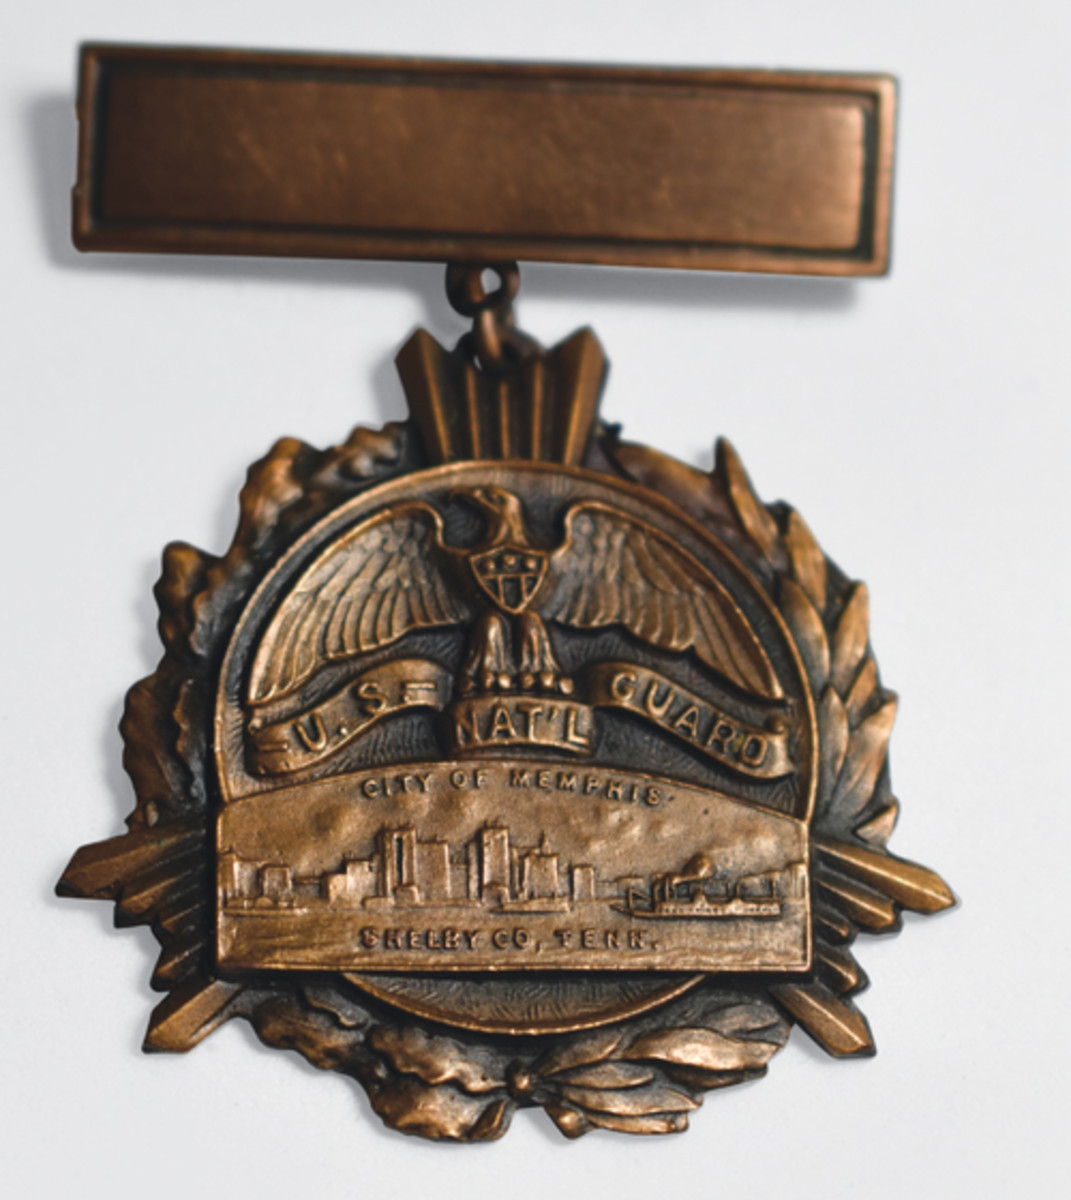 A classic example of a Whitehead-Hoag, Type 4 medal as used by a National Guard Regiment from Memphis, Tennessee.